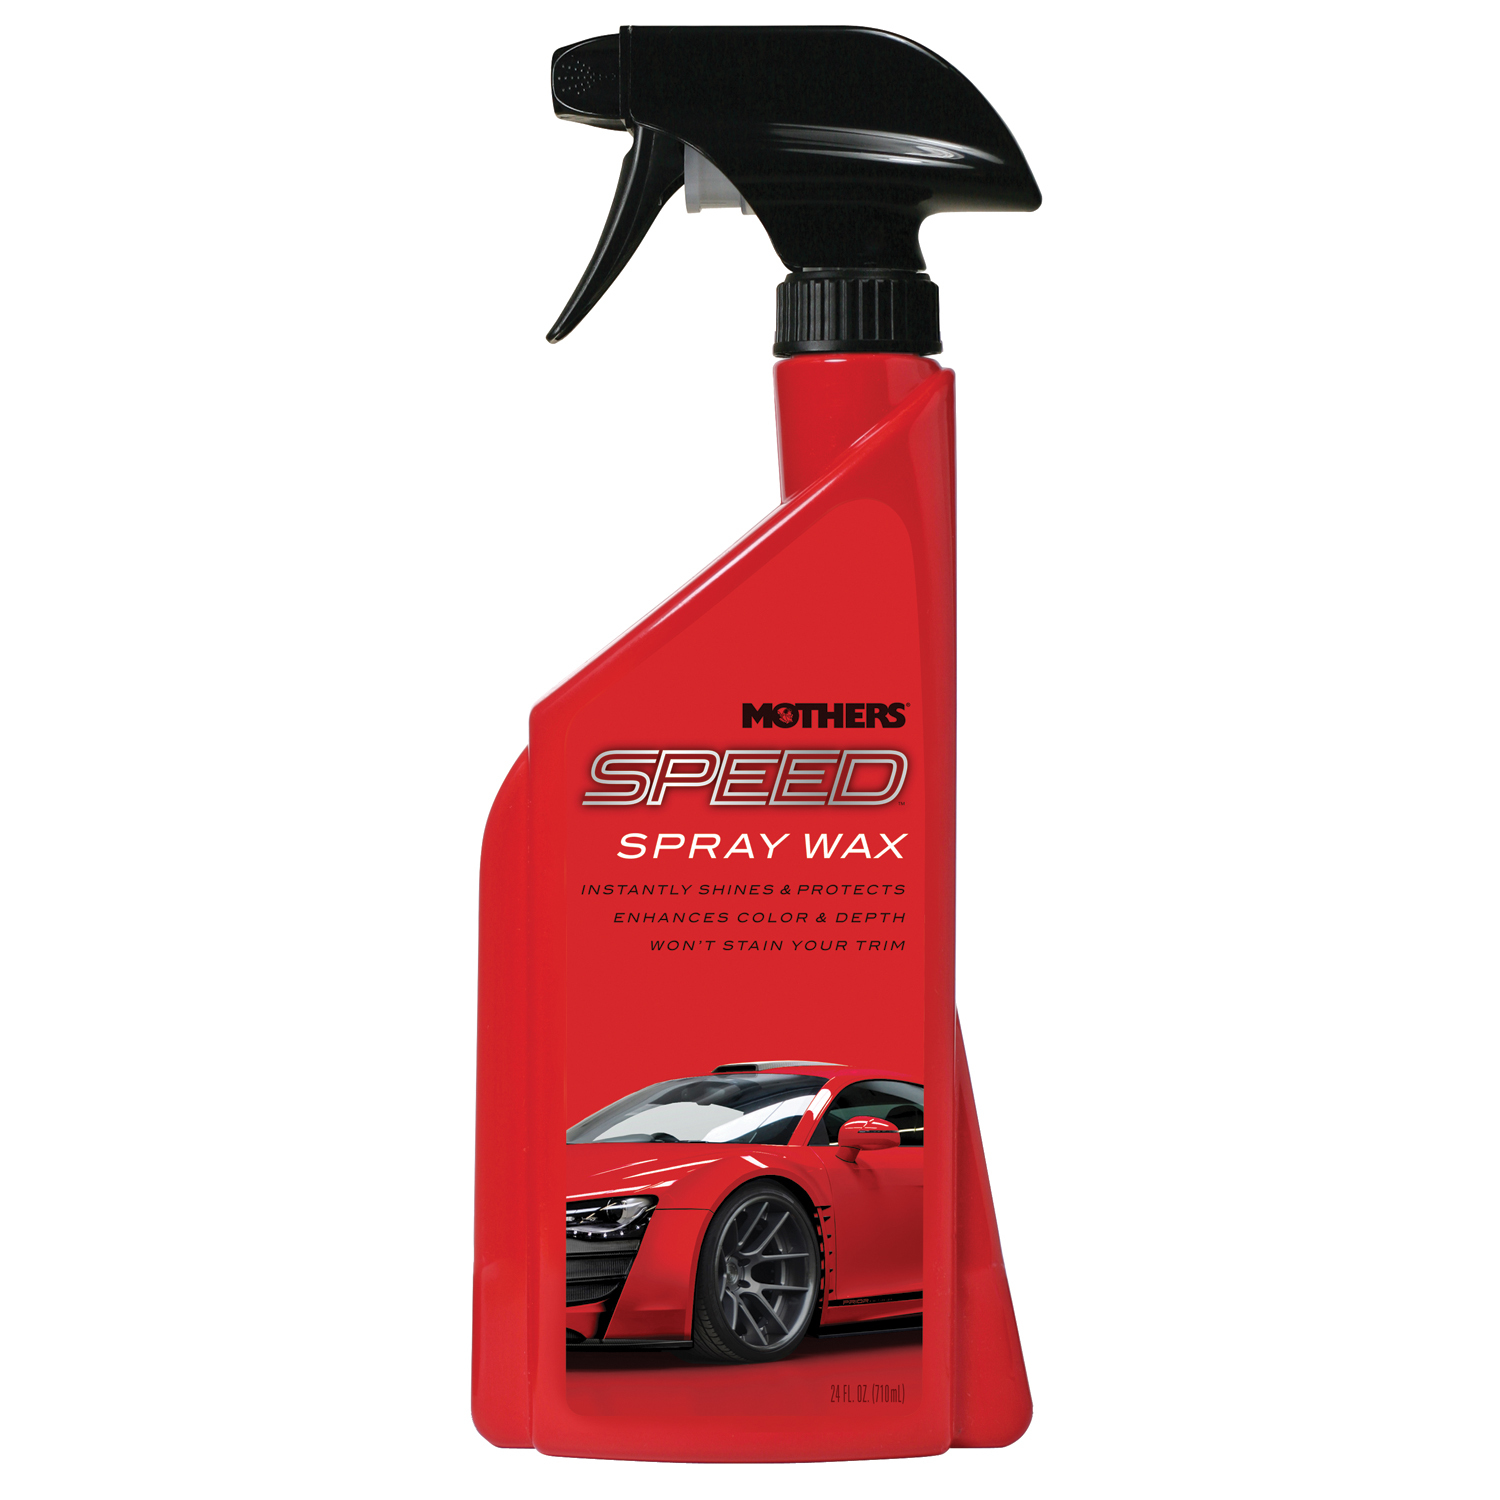 Speed Spray Wax 24oz.